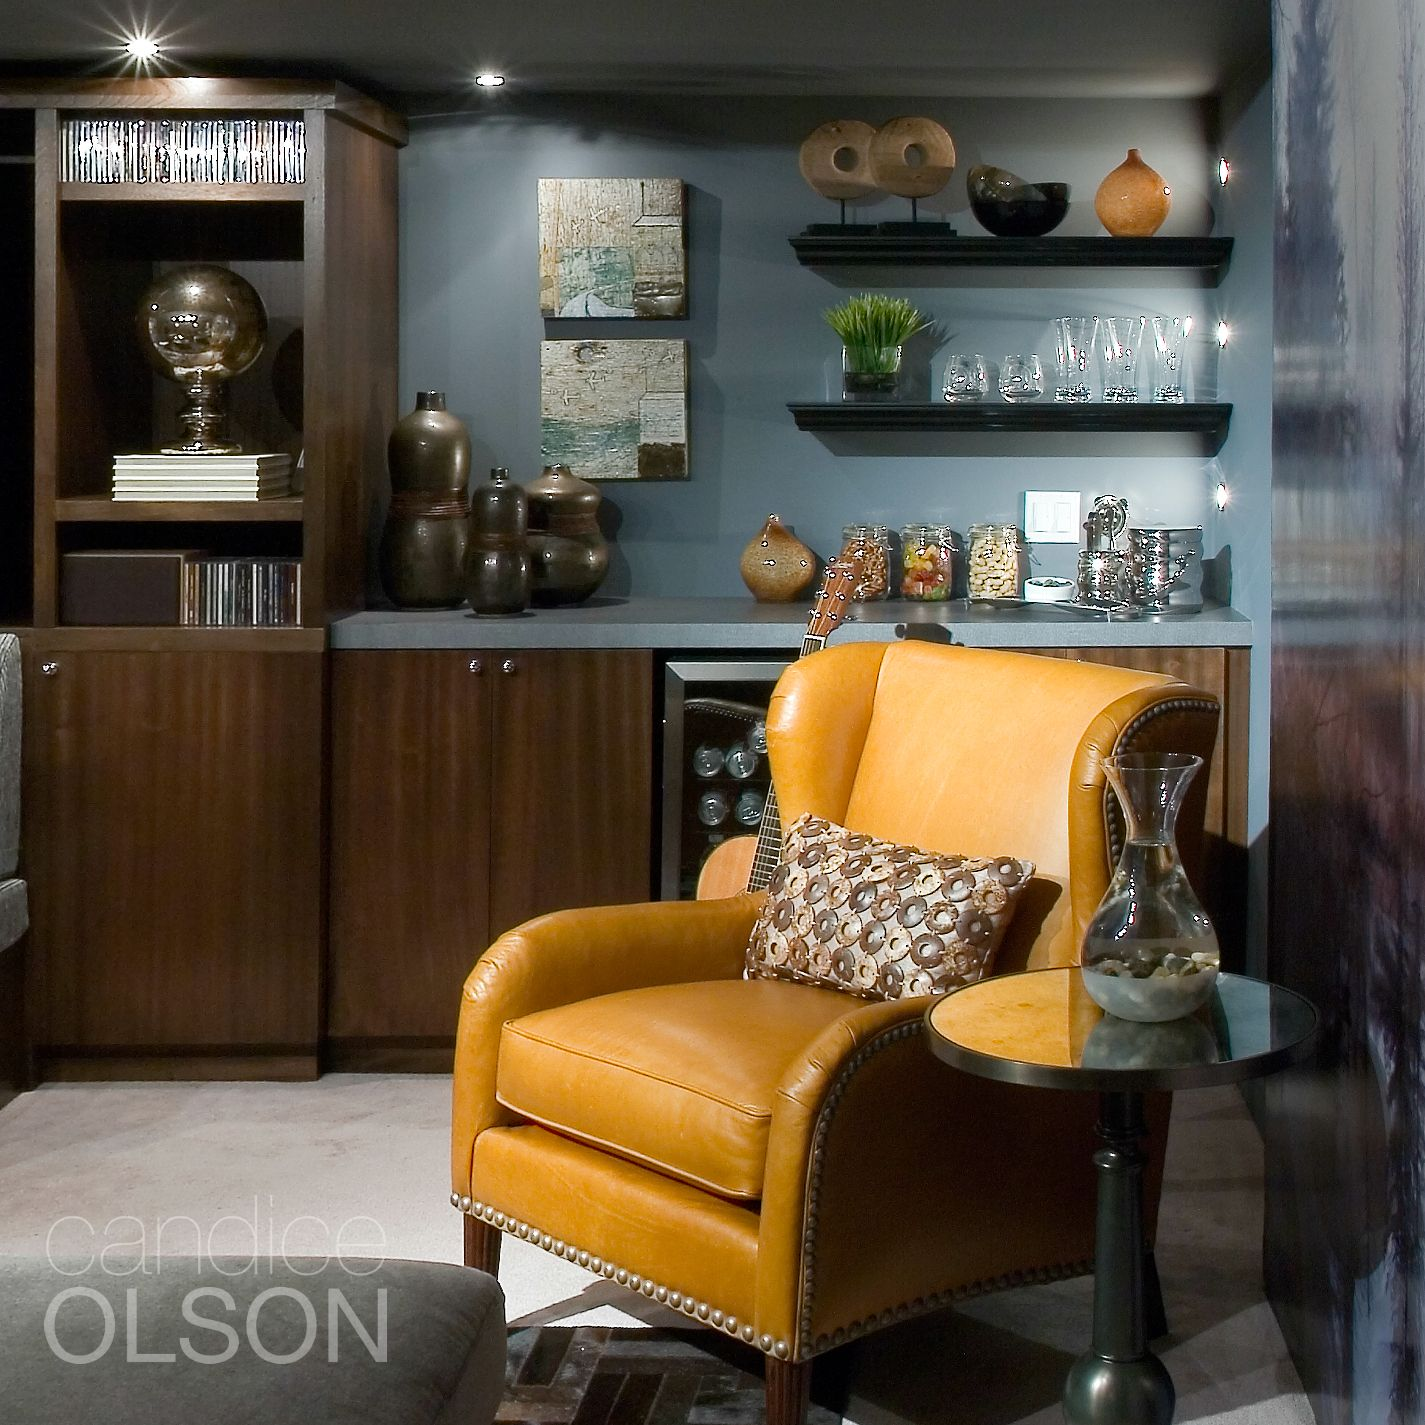 Candice Olson Basement Design: Let There Be Light! Working With A Shallow Bulkhead And